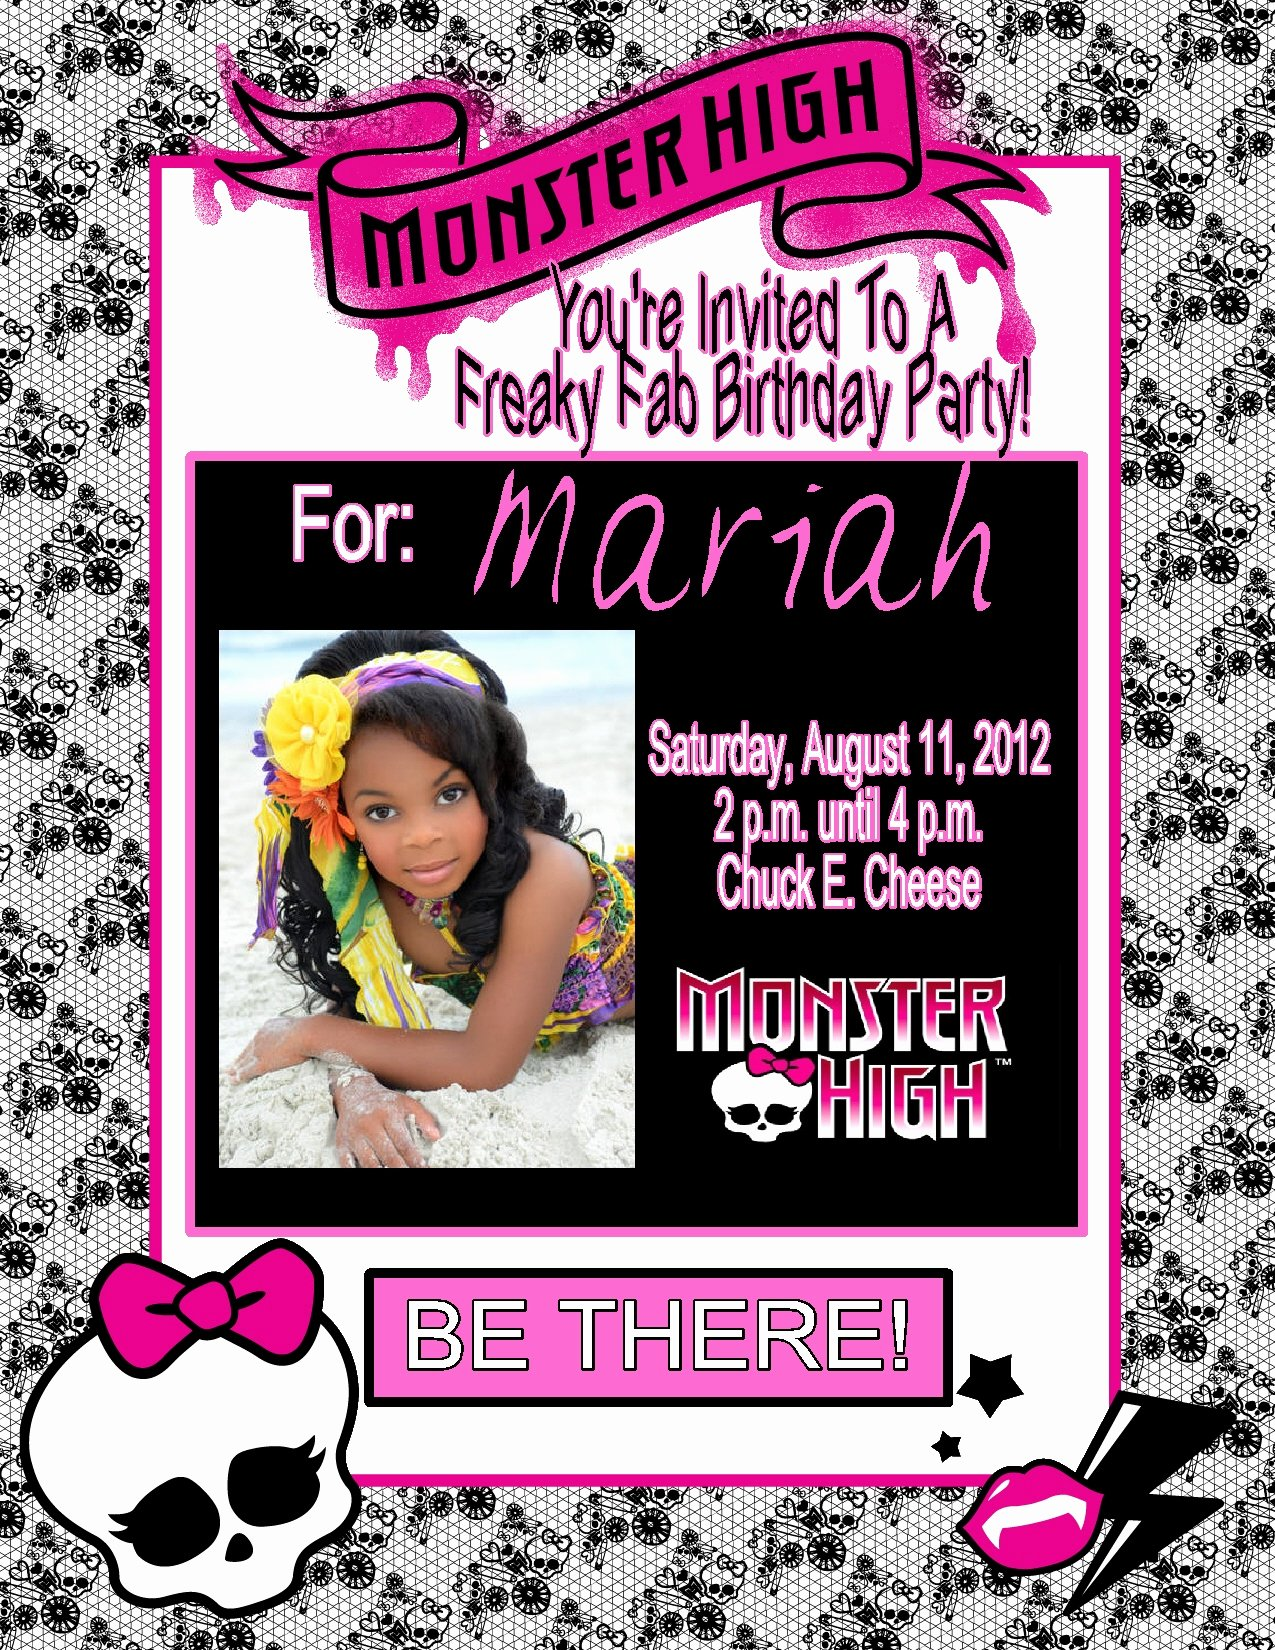 Monster High Invitations Templates New Monster High Personalized Birthday Invitations $1